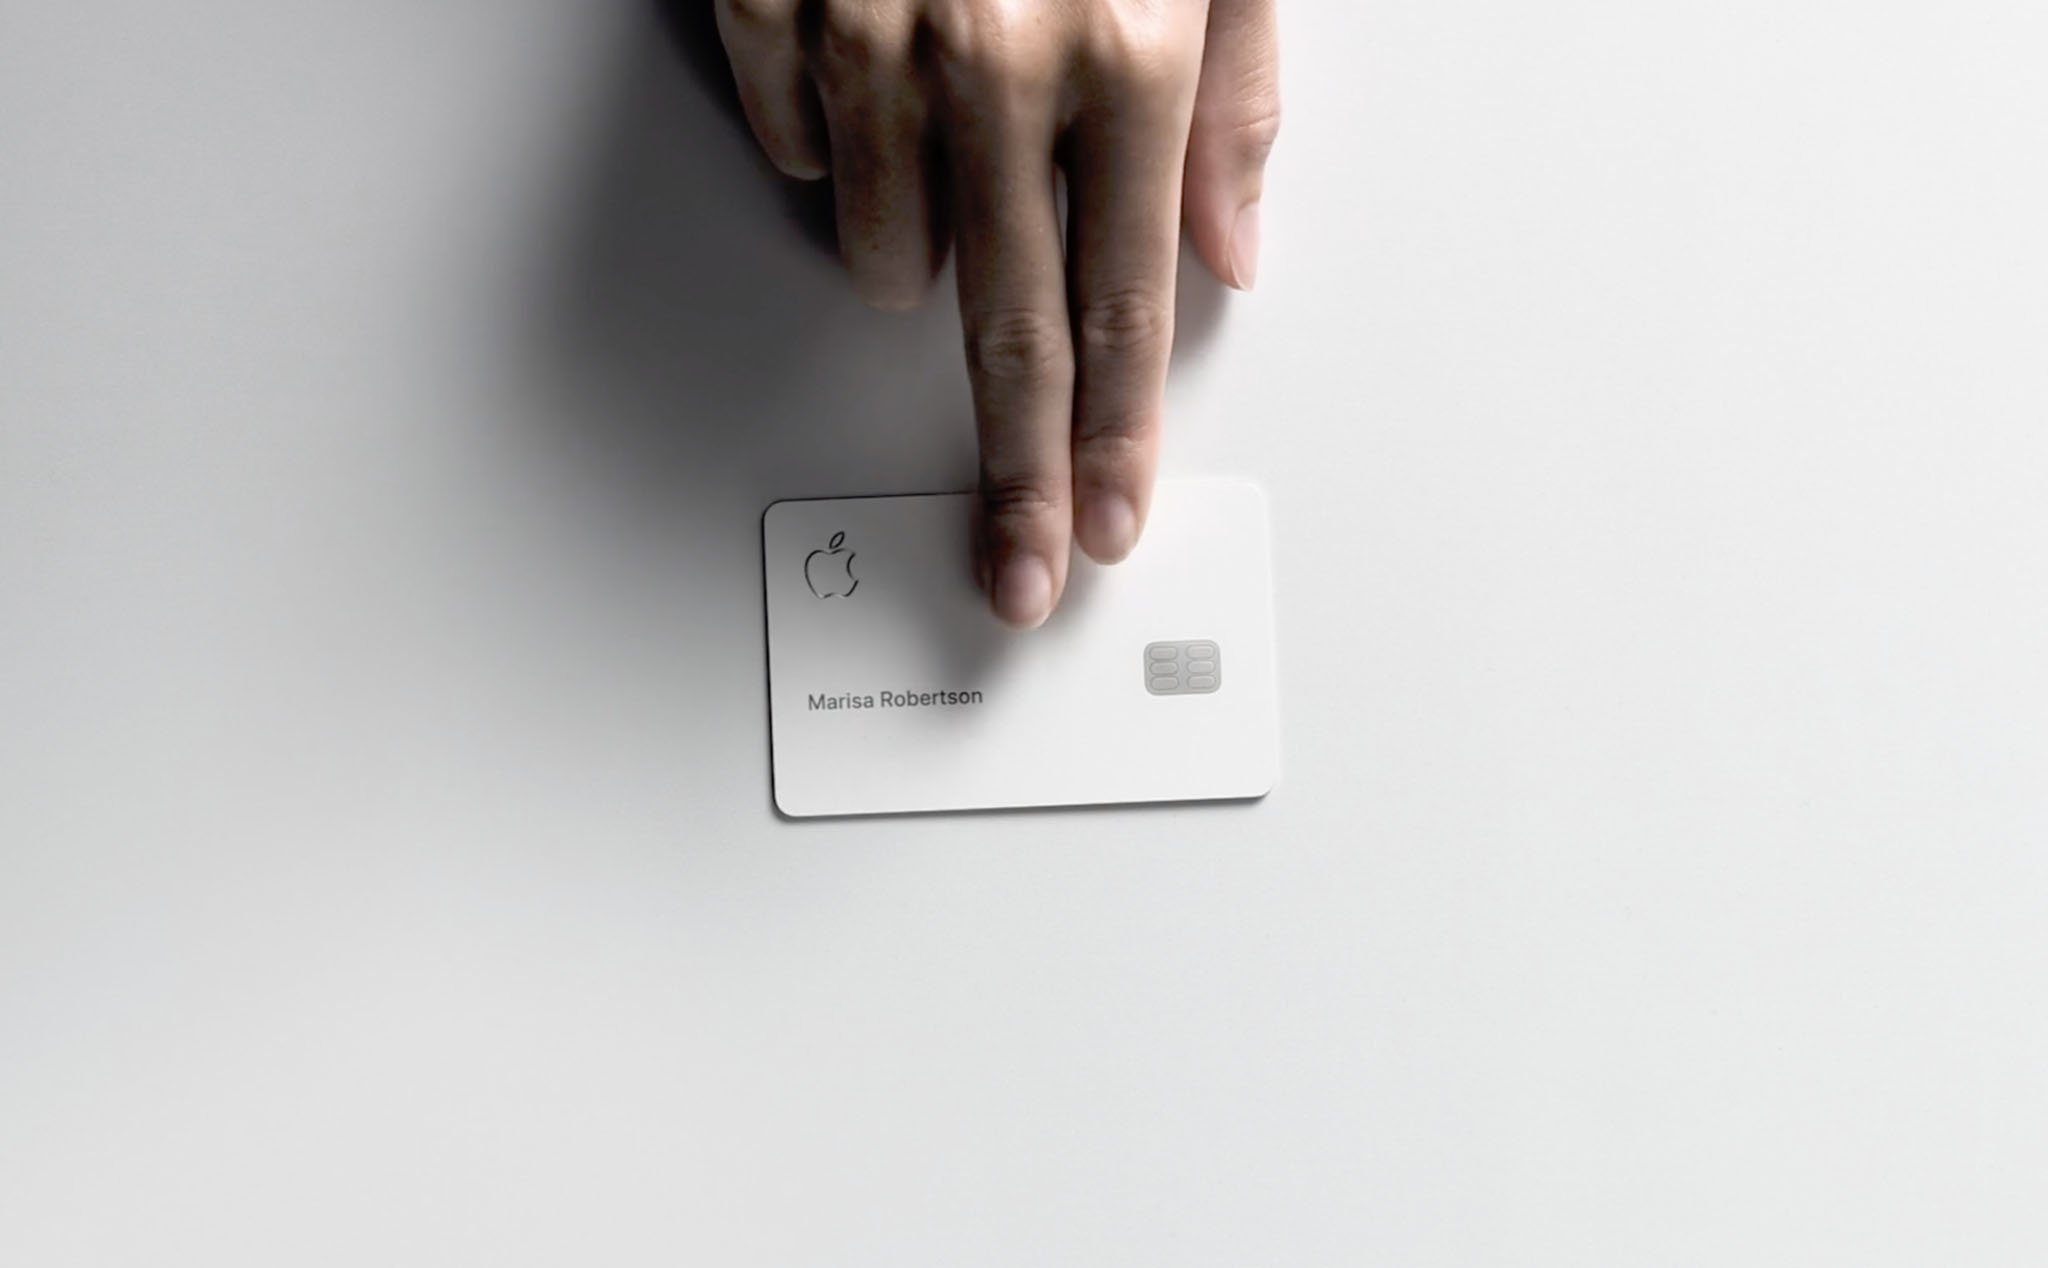 Apple Card users have hired $ 786 million to spend